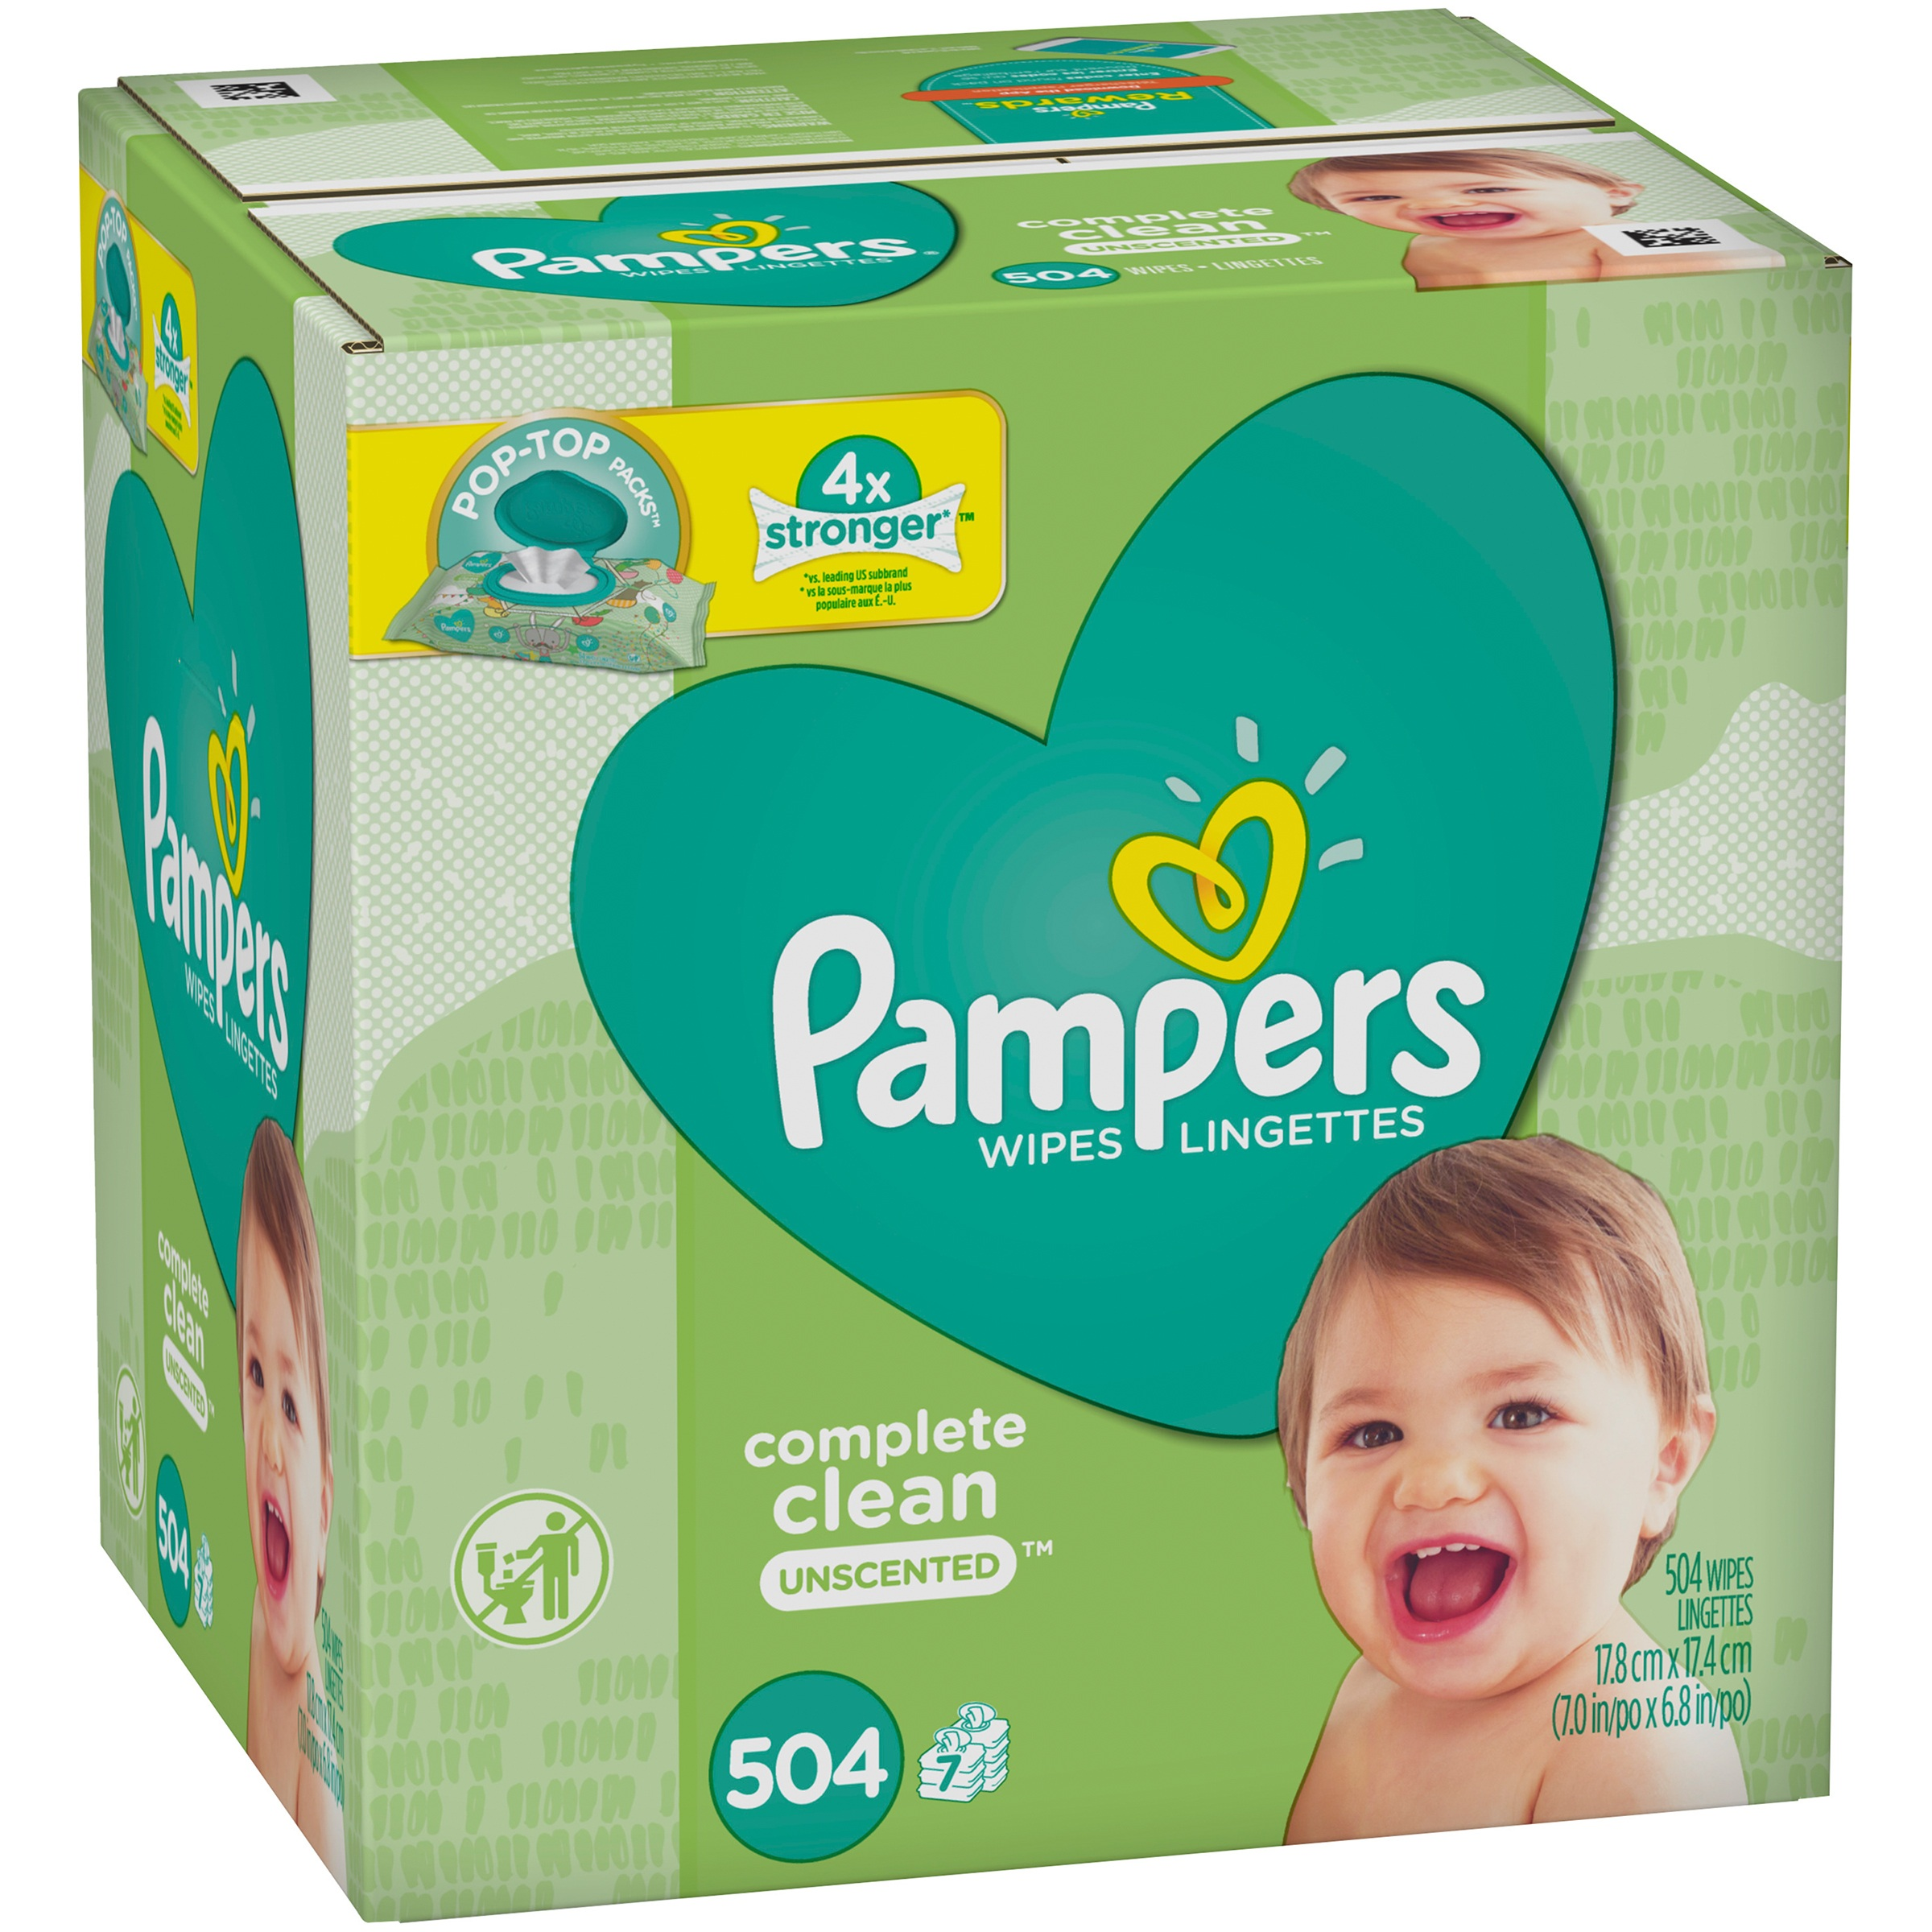 Pampers Complete Clean Unscented Baby Wipes, 7X (504 count)